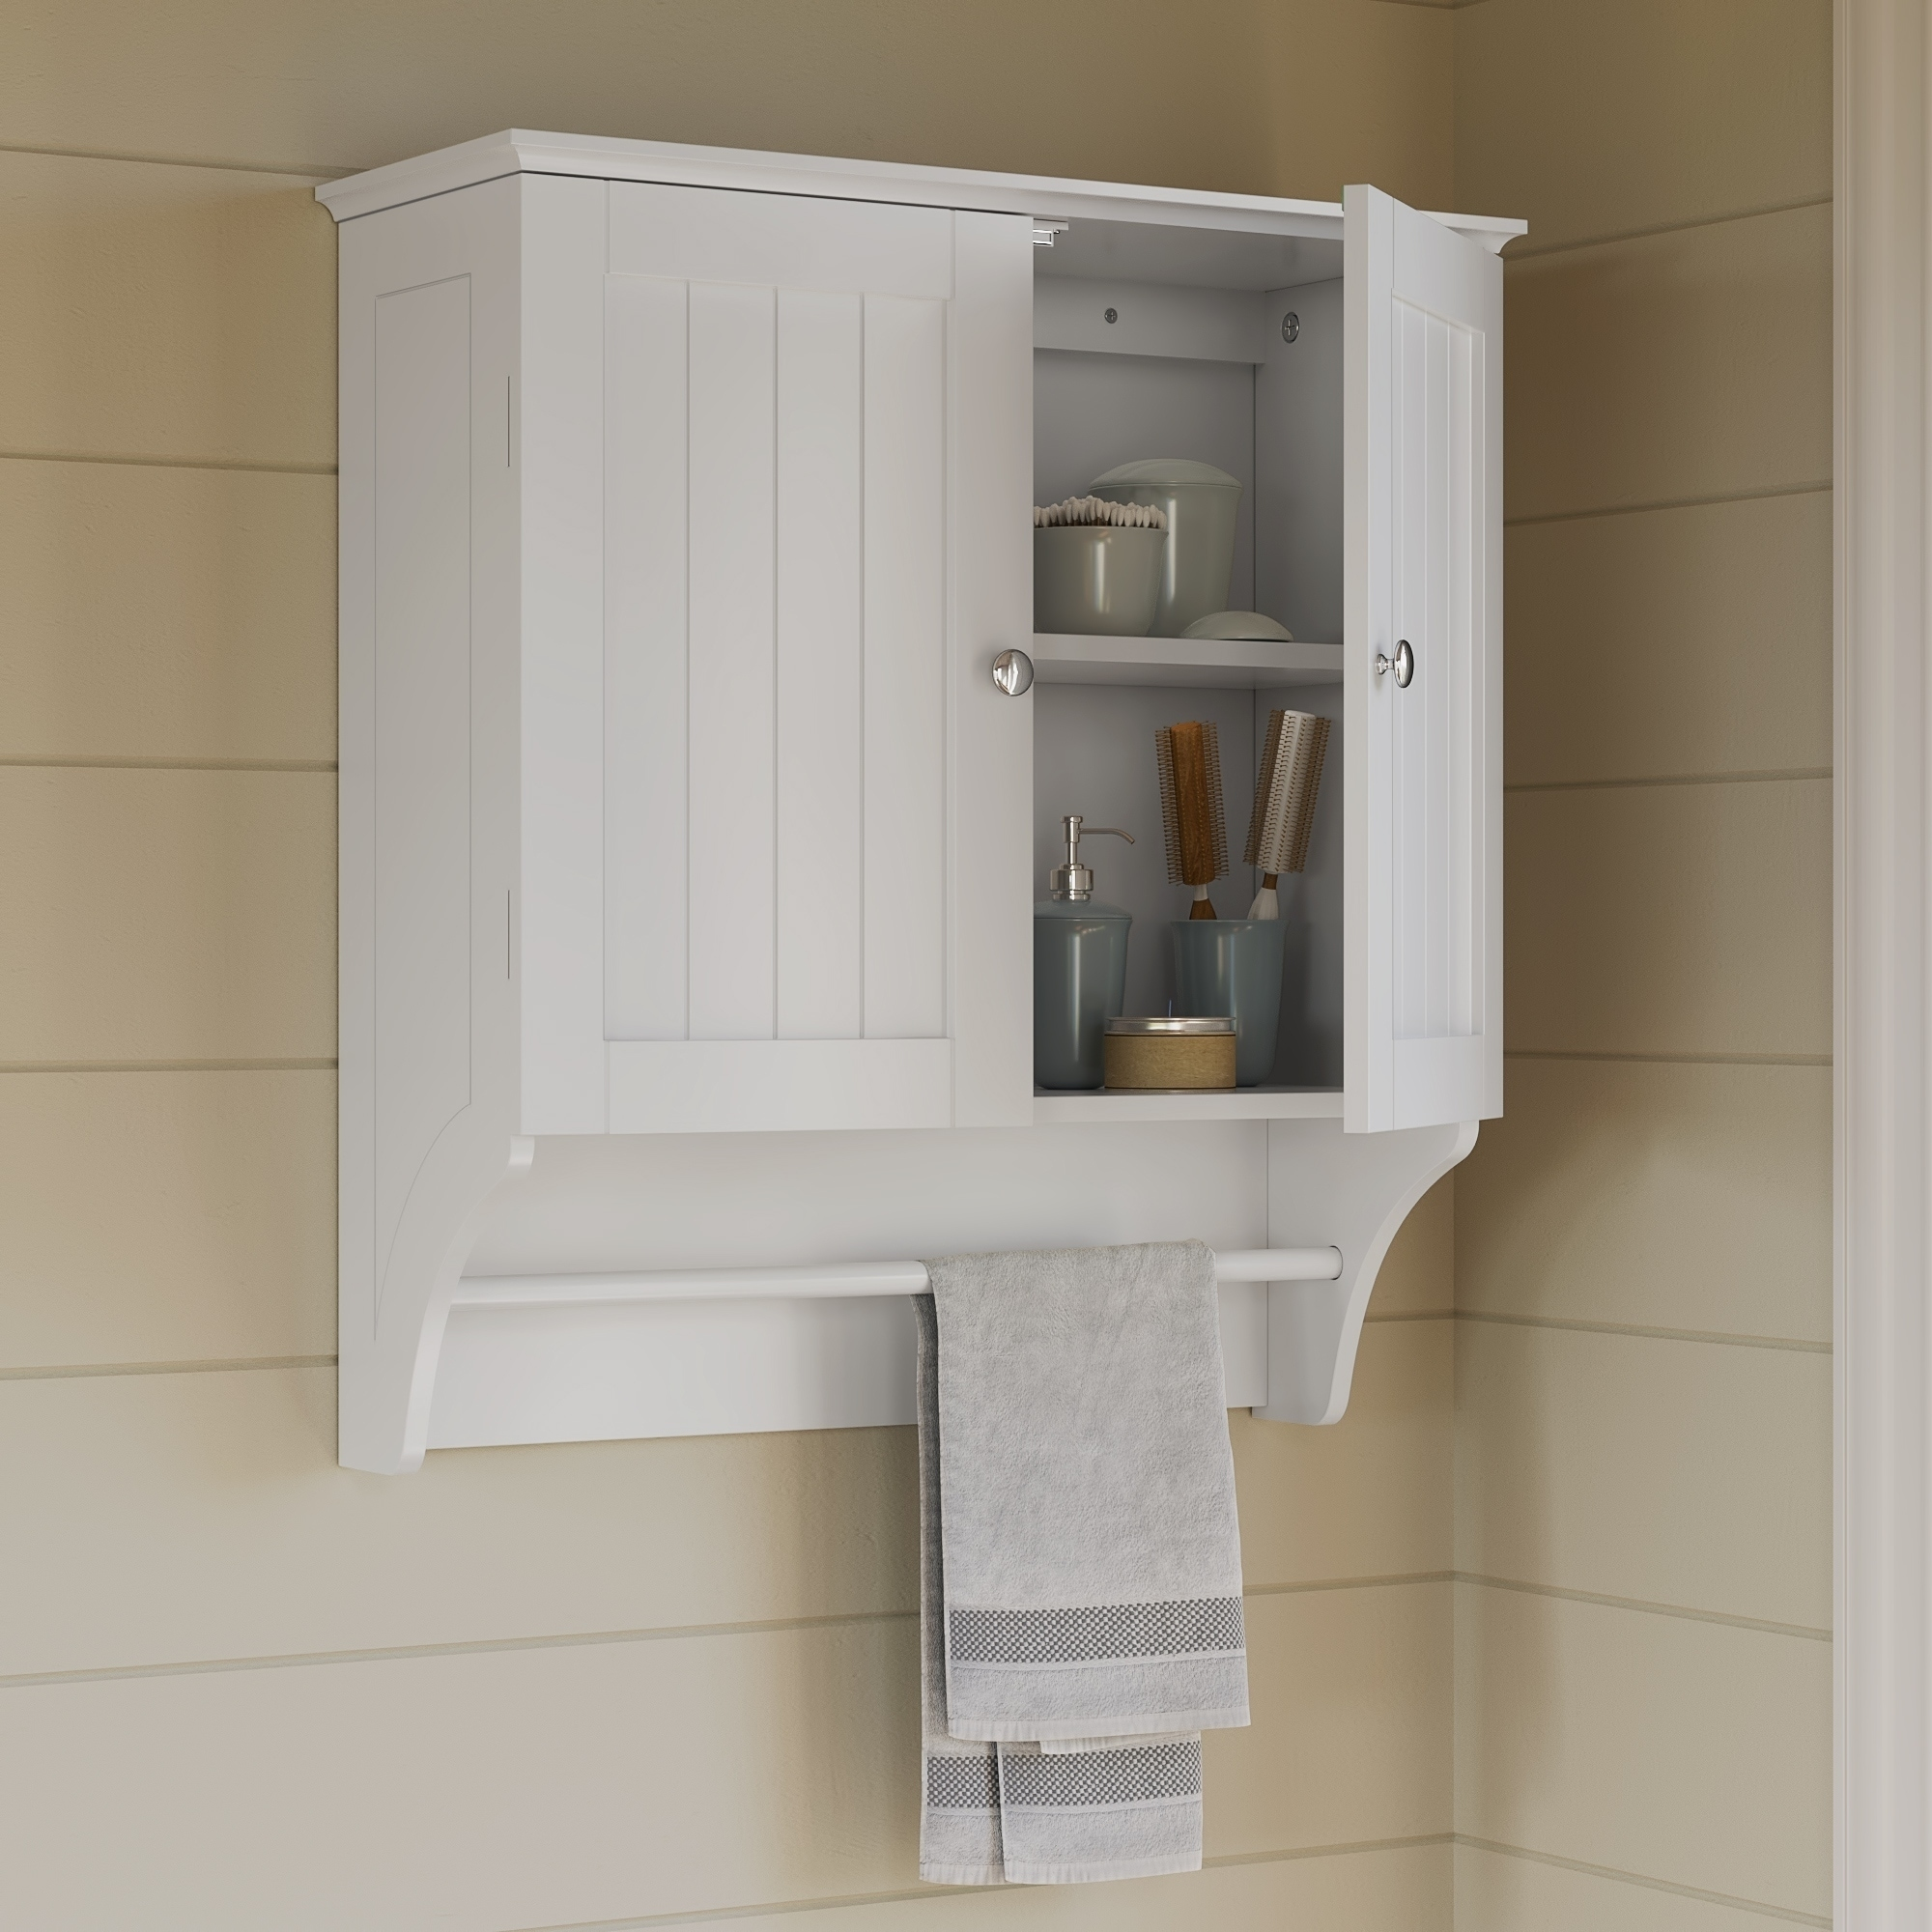 Buy Wall Cabinet Bathroom Cabinets & Storage Online at Overstock.com ...